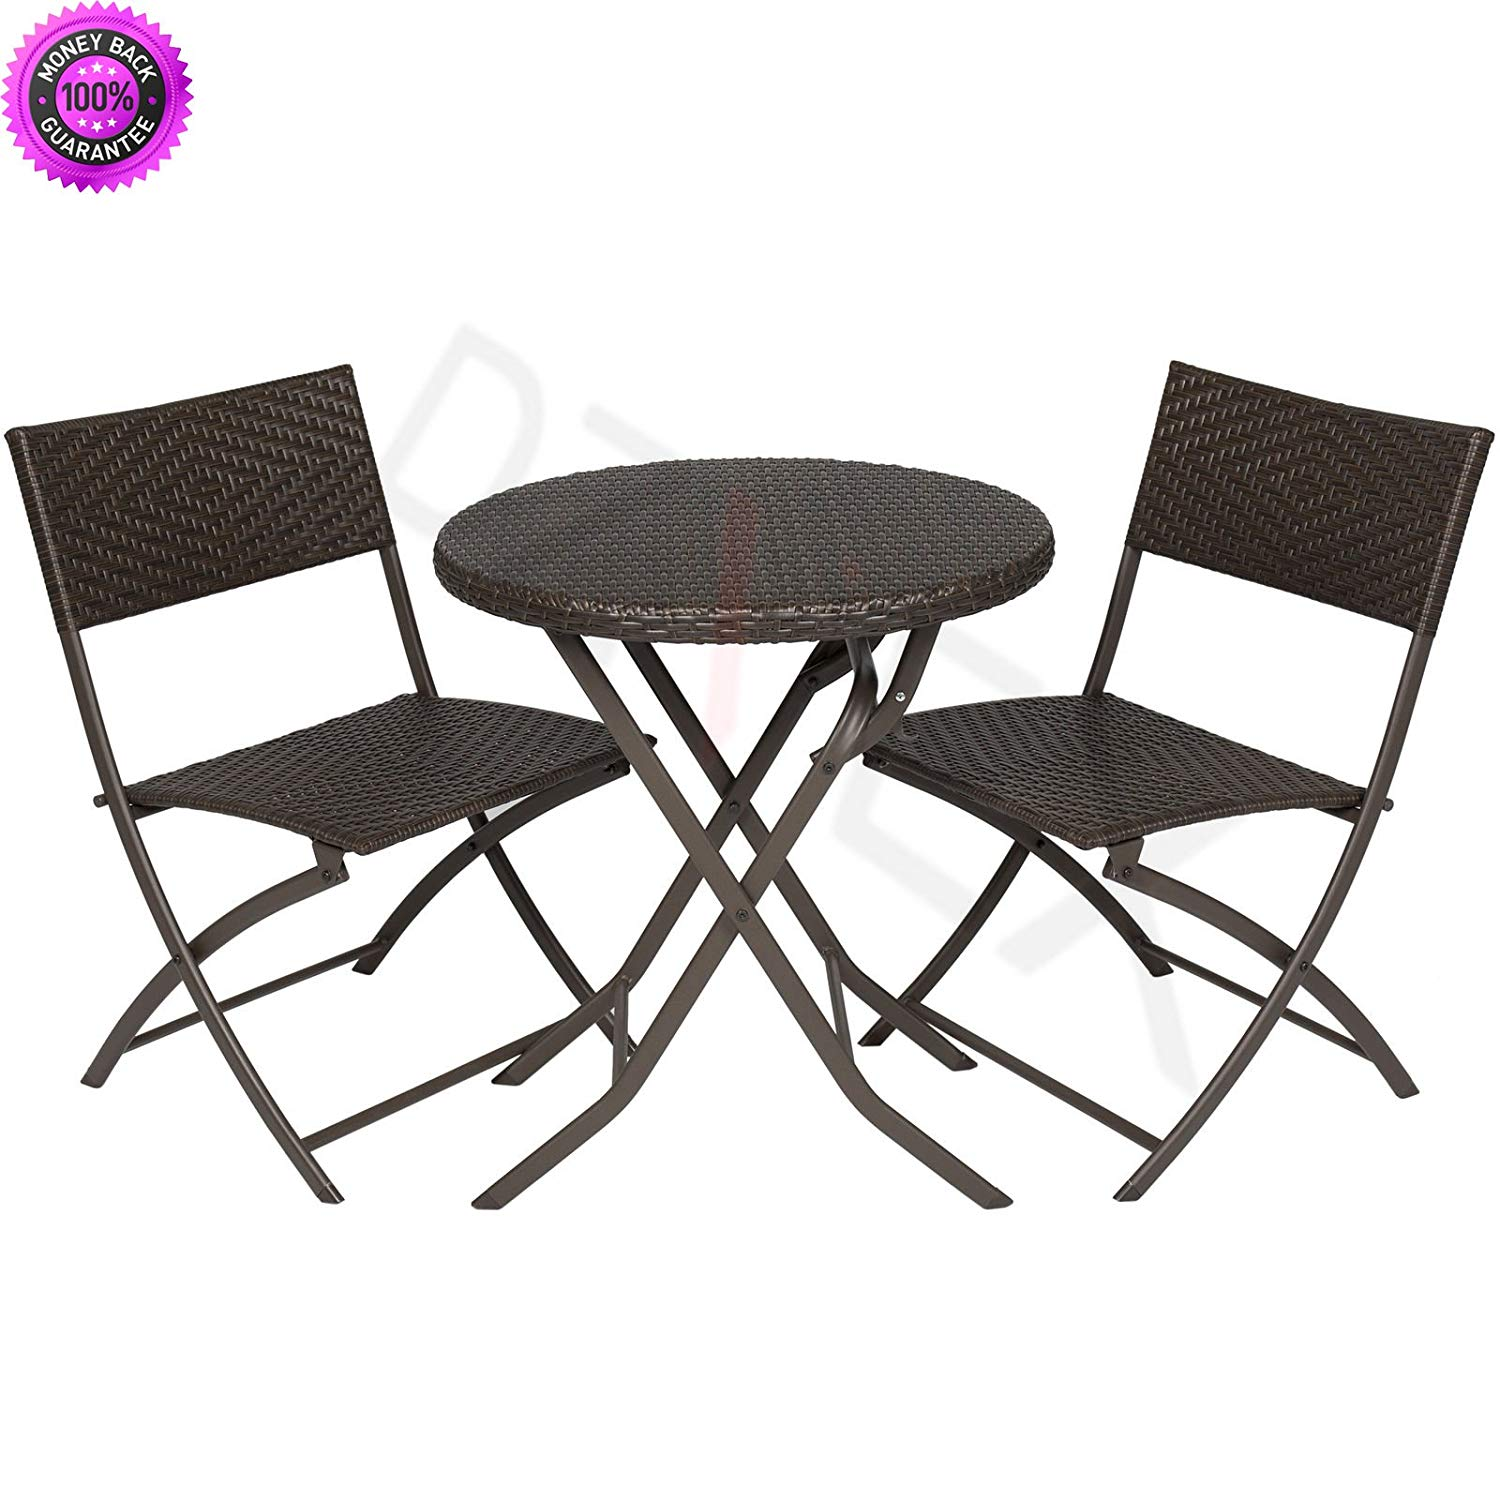 Lowes Outdoor Table And Chairs Cheap Lawn Furniture Lowes Find Lawn Furniture Lowes Deals On